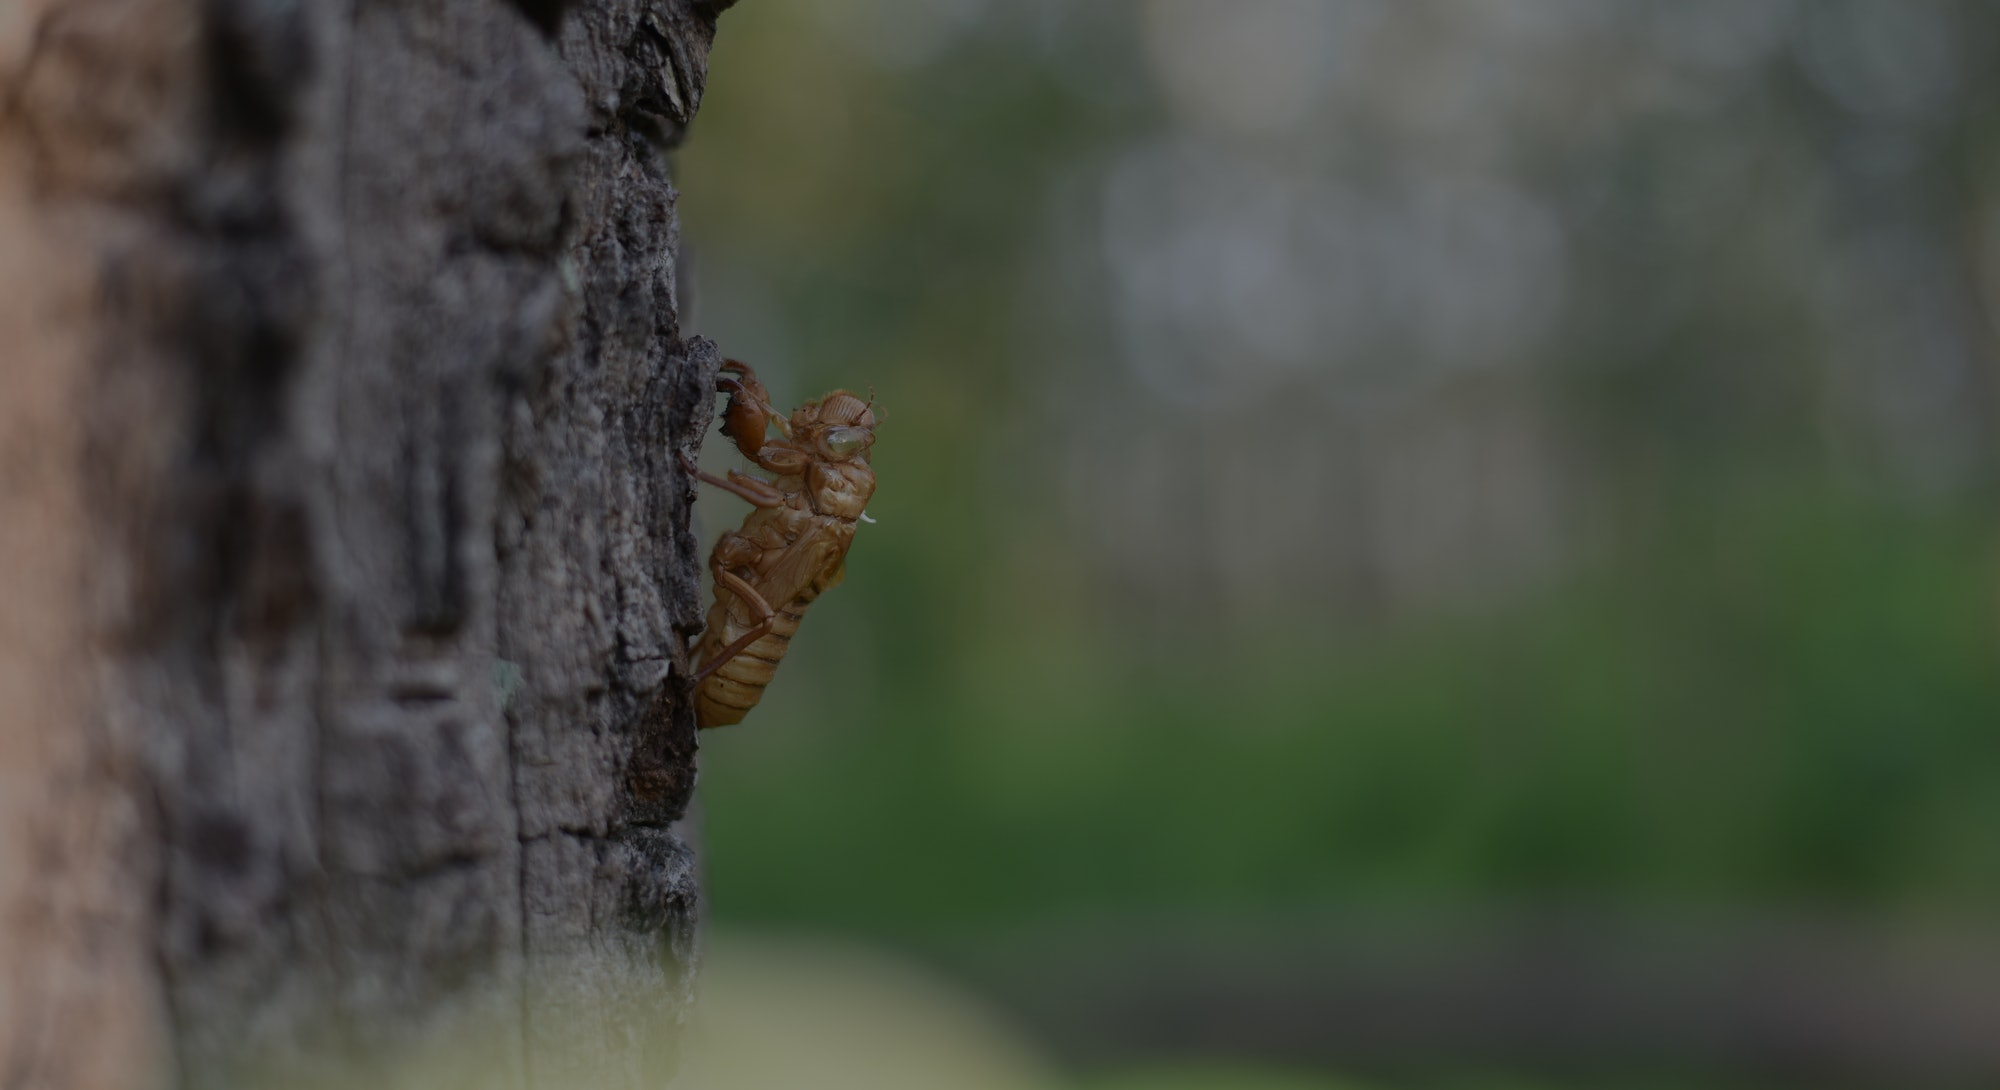 Cicadas molting on the tree. Cicada stains, Beautiful nature scene Insect molting cicadas in nature. concept Cicadas metamorphosis grow up to adult insect.